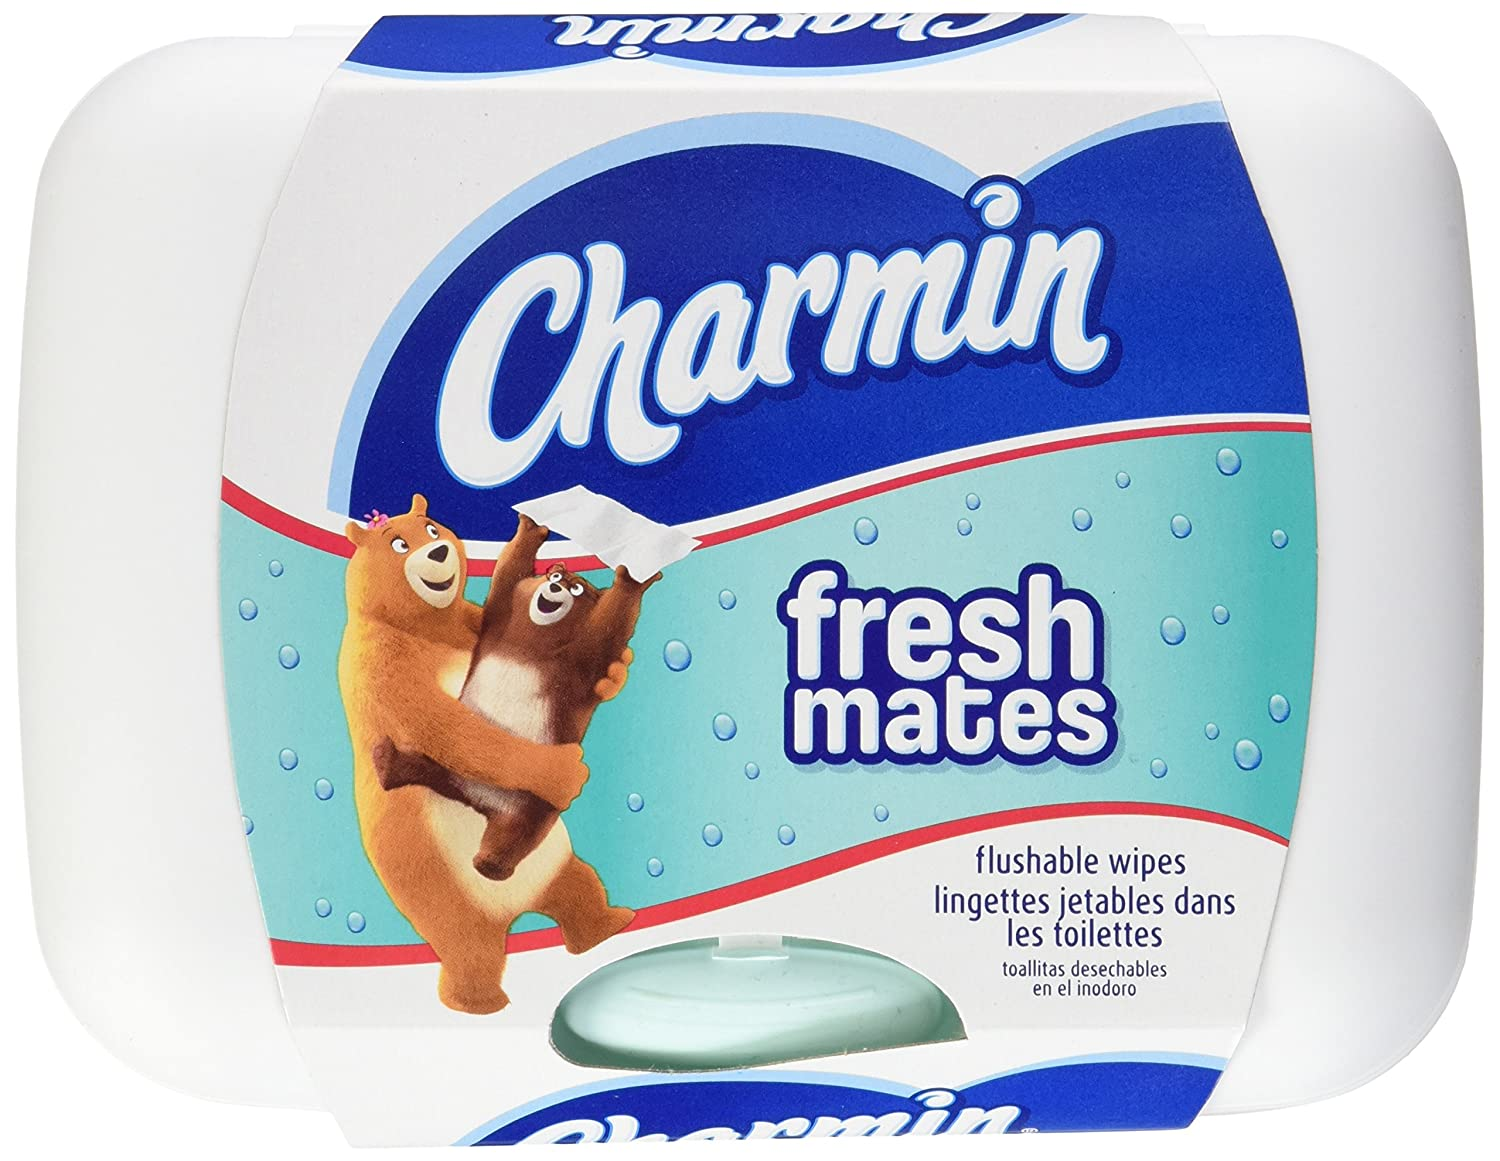 Charmin Freshmates Flushable Wipes 40 Count - with Refillable Tub by Charmin: Amazon.es: Salud y cuidado personal